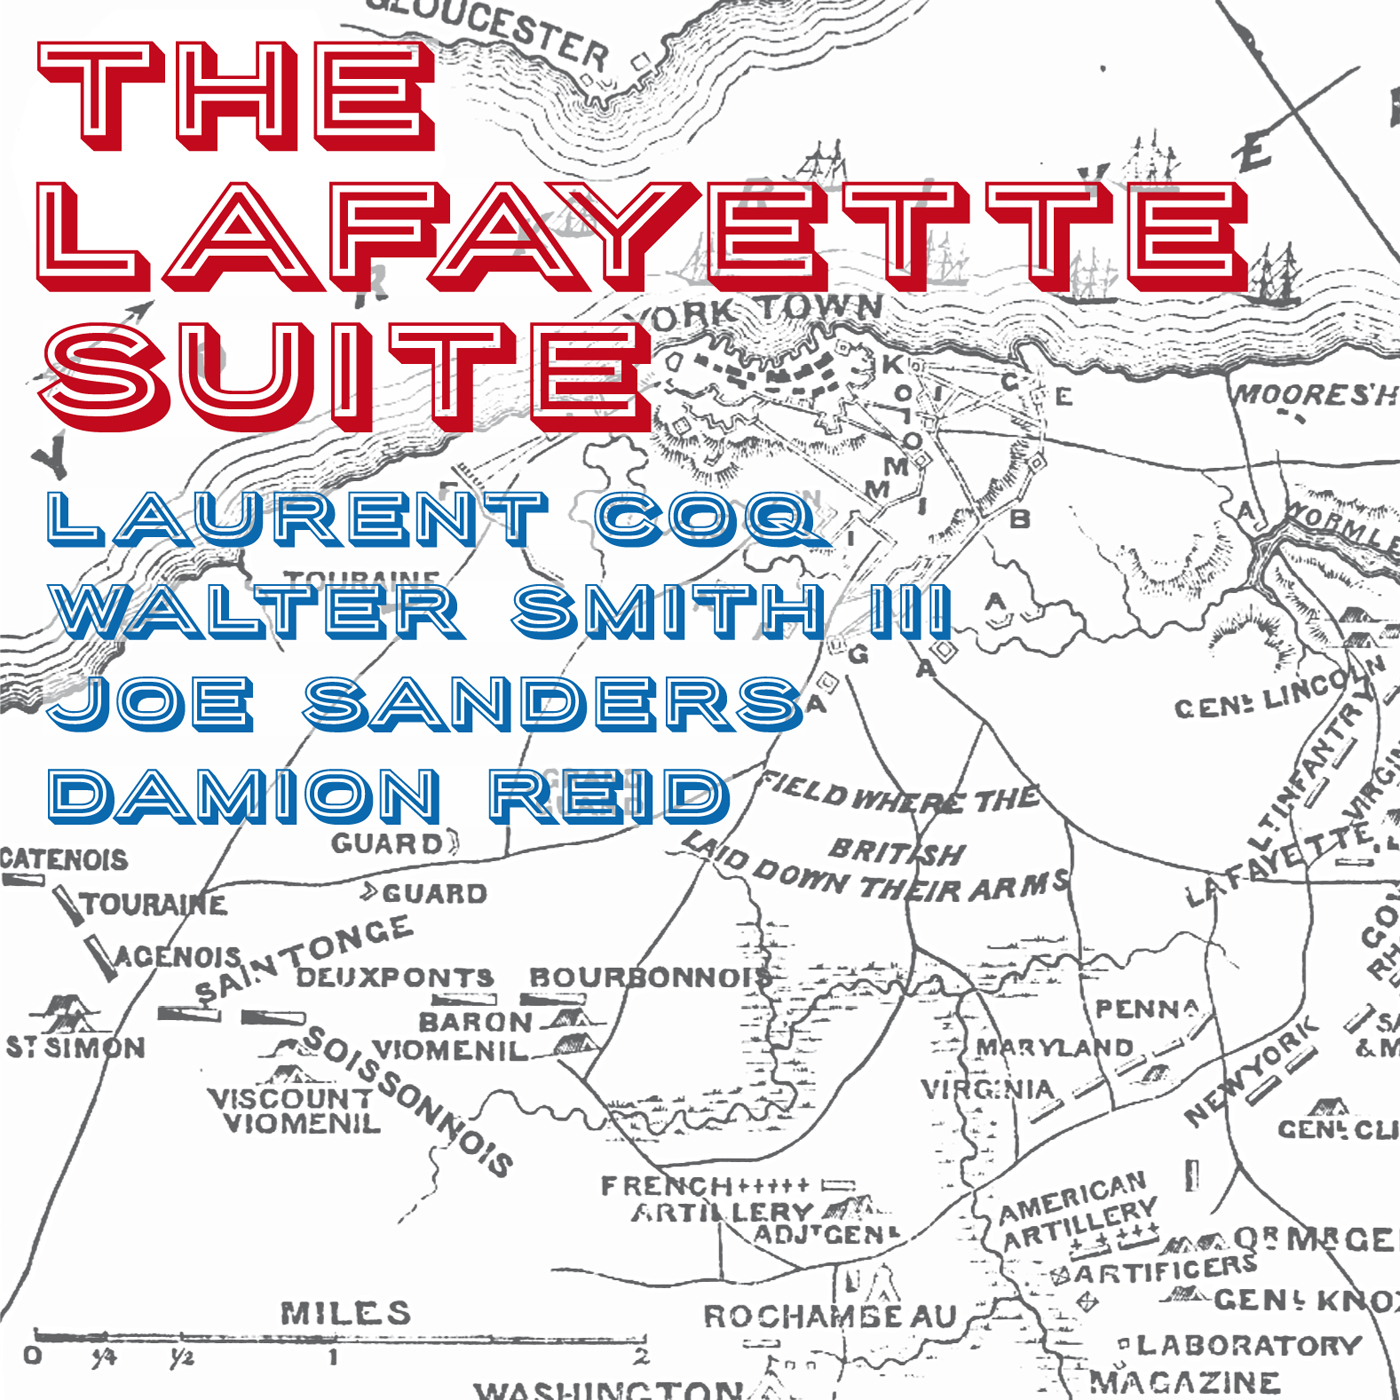 Laurent Coq/Walter Smith III The Lafayette Suite